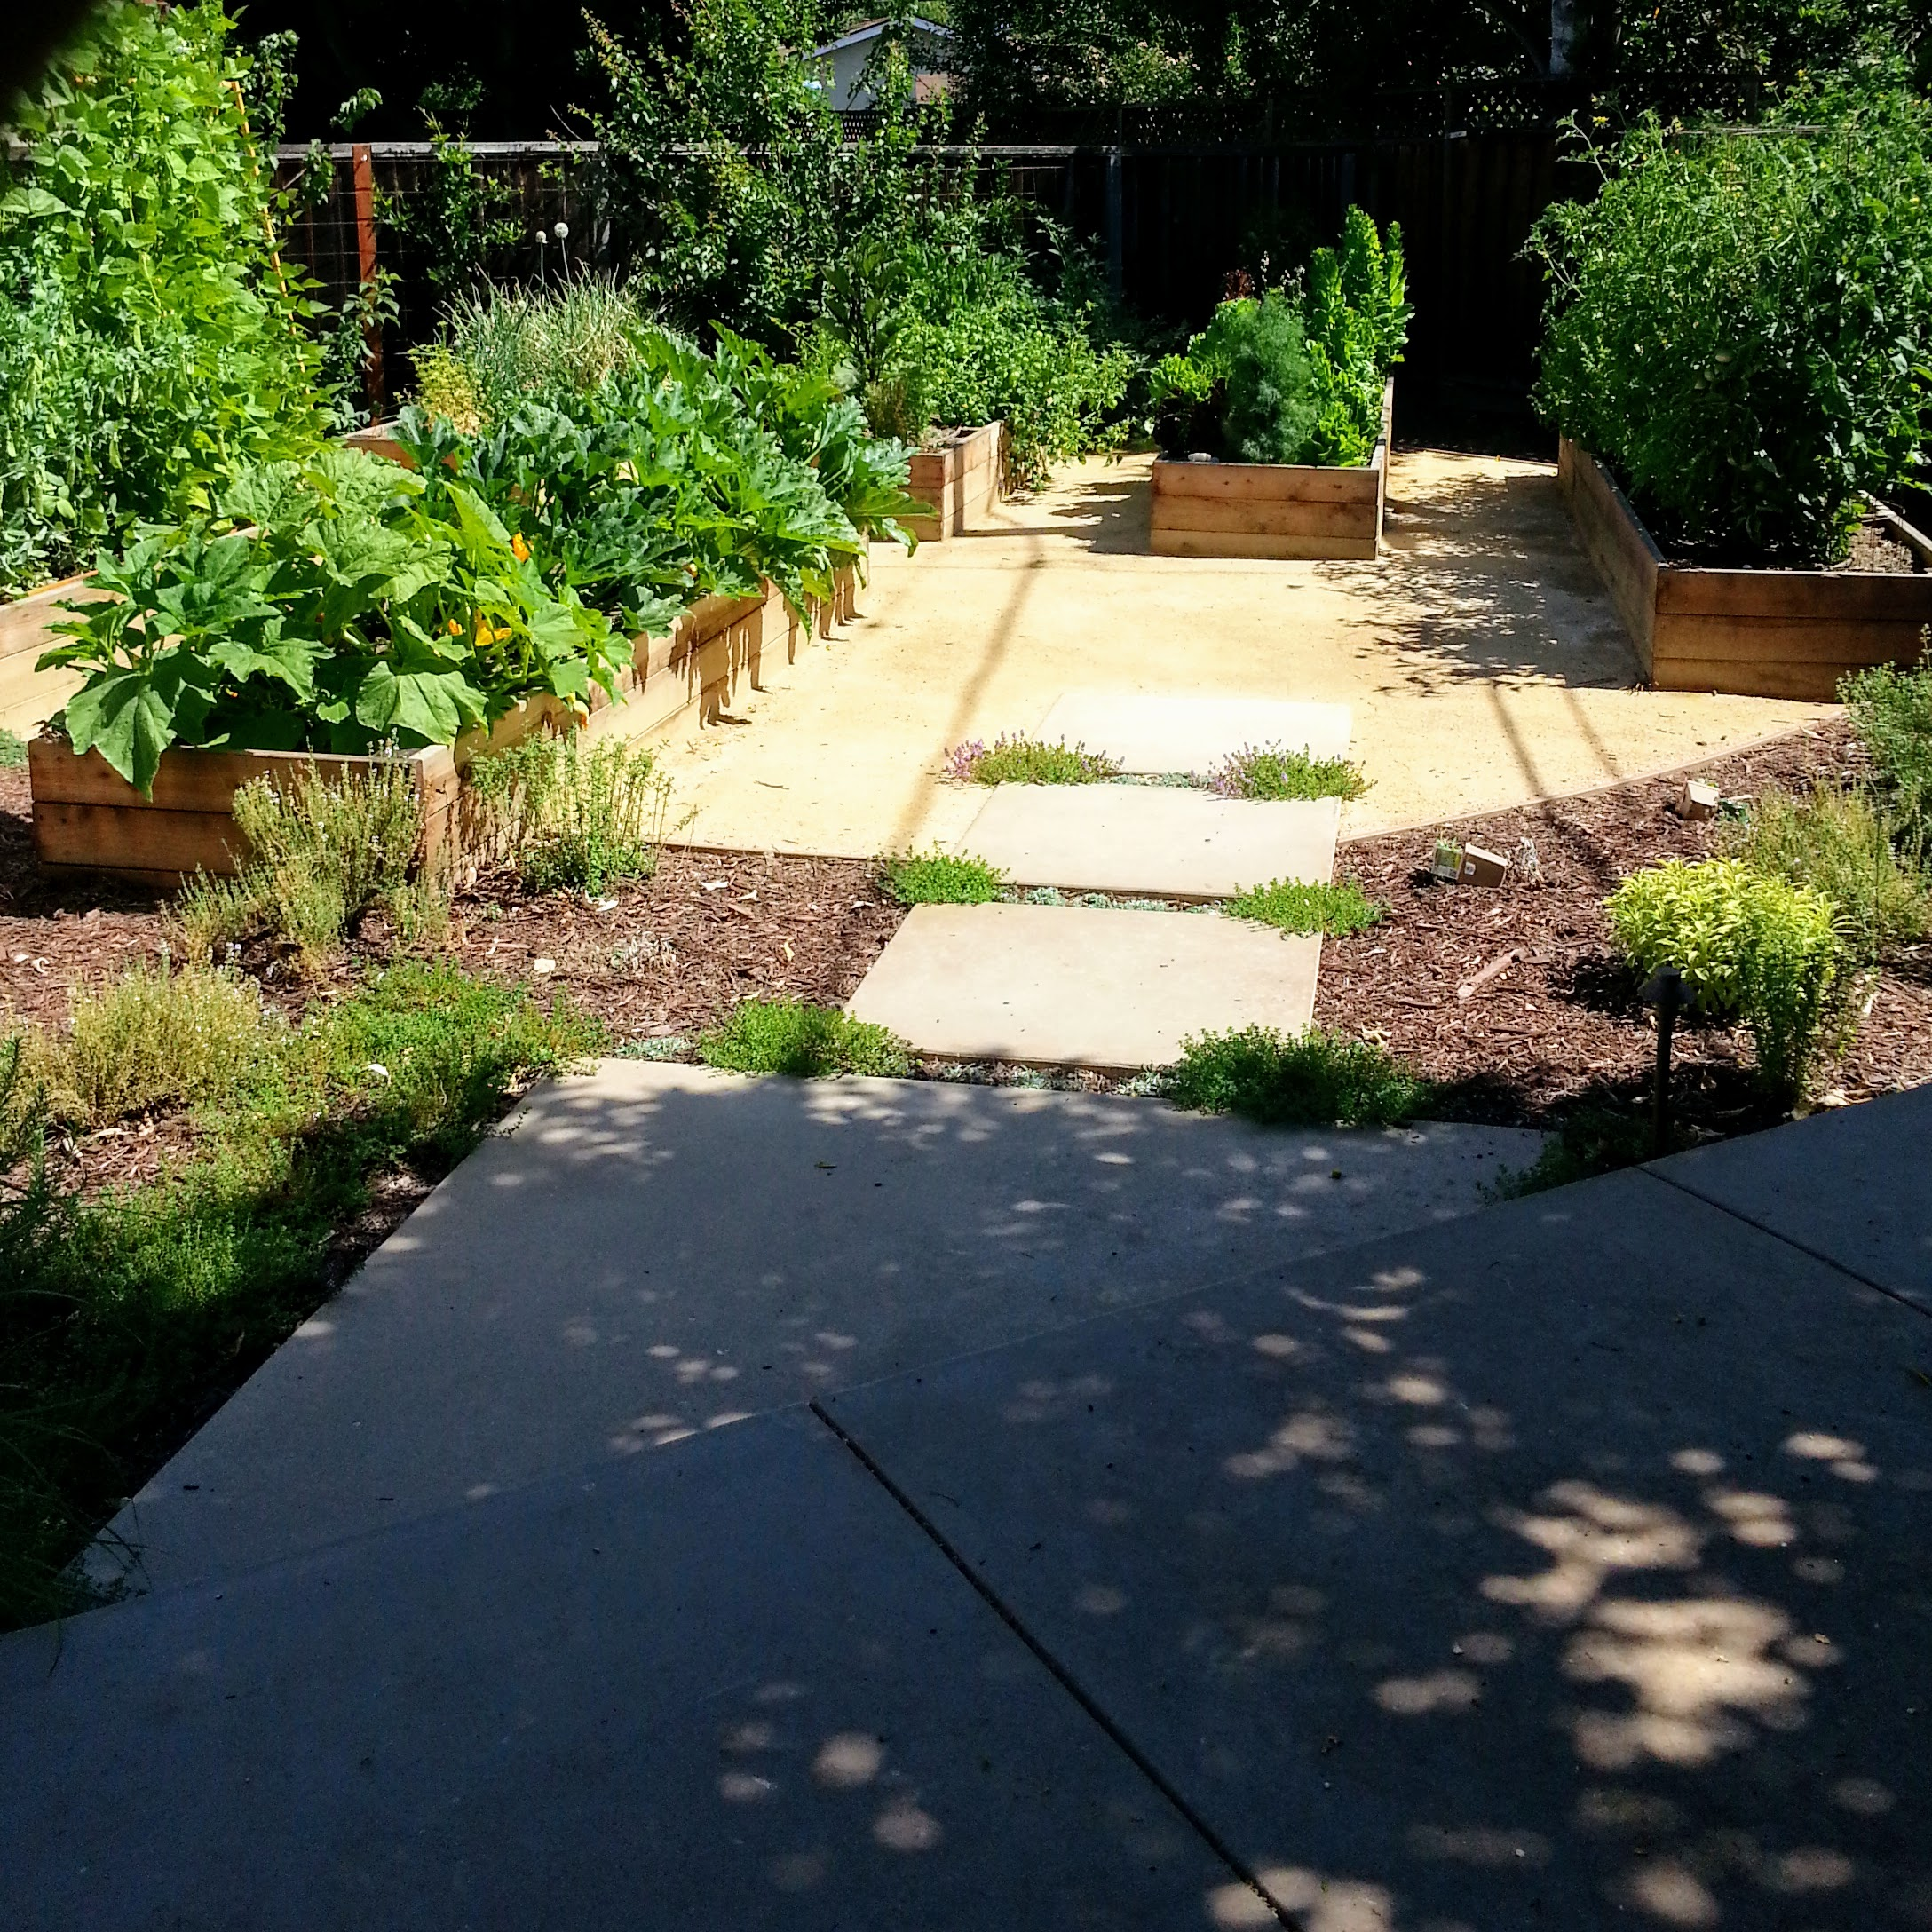 Mountain View Landscape Vegetable Garden Raised Beds